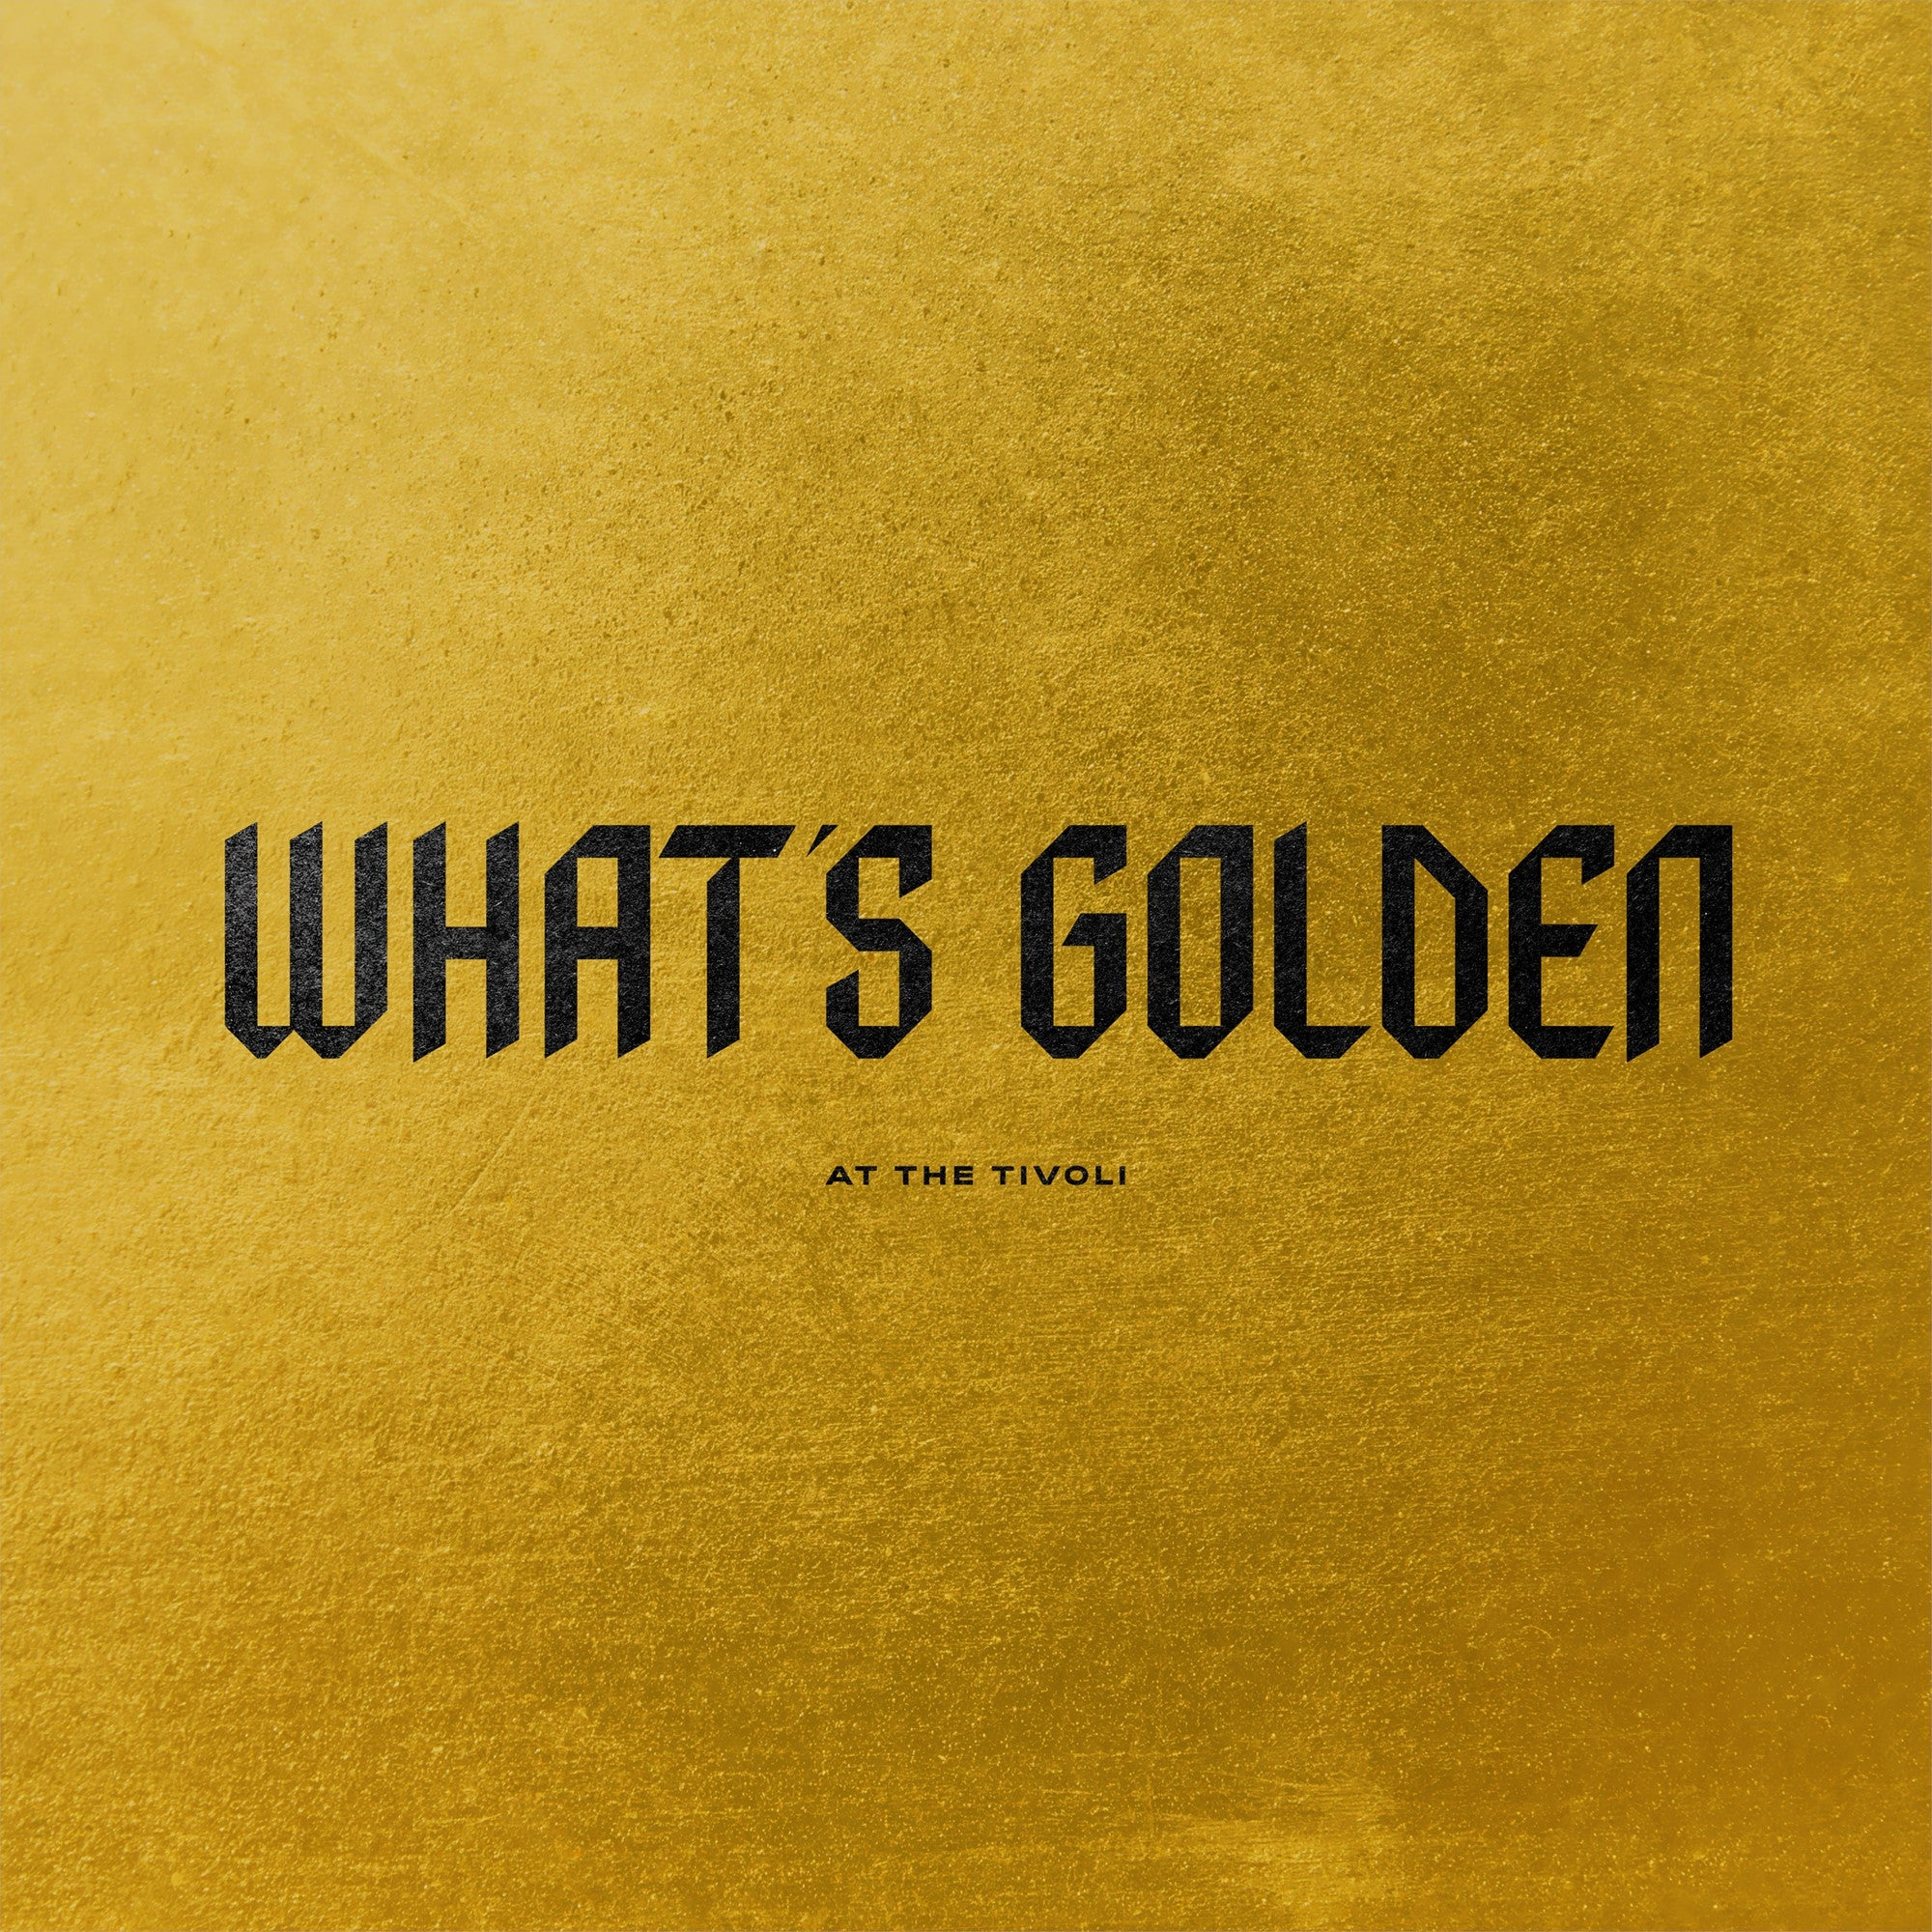 What's Golden at the Tivoli